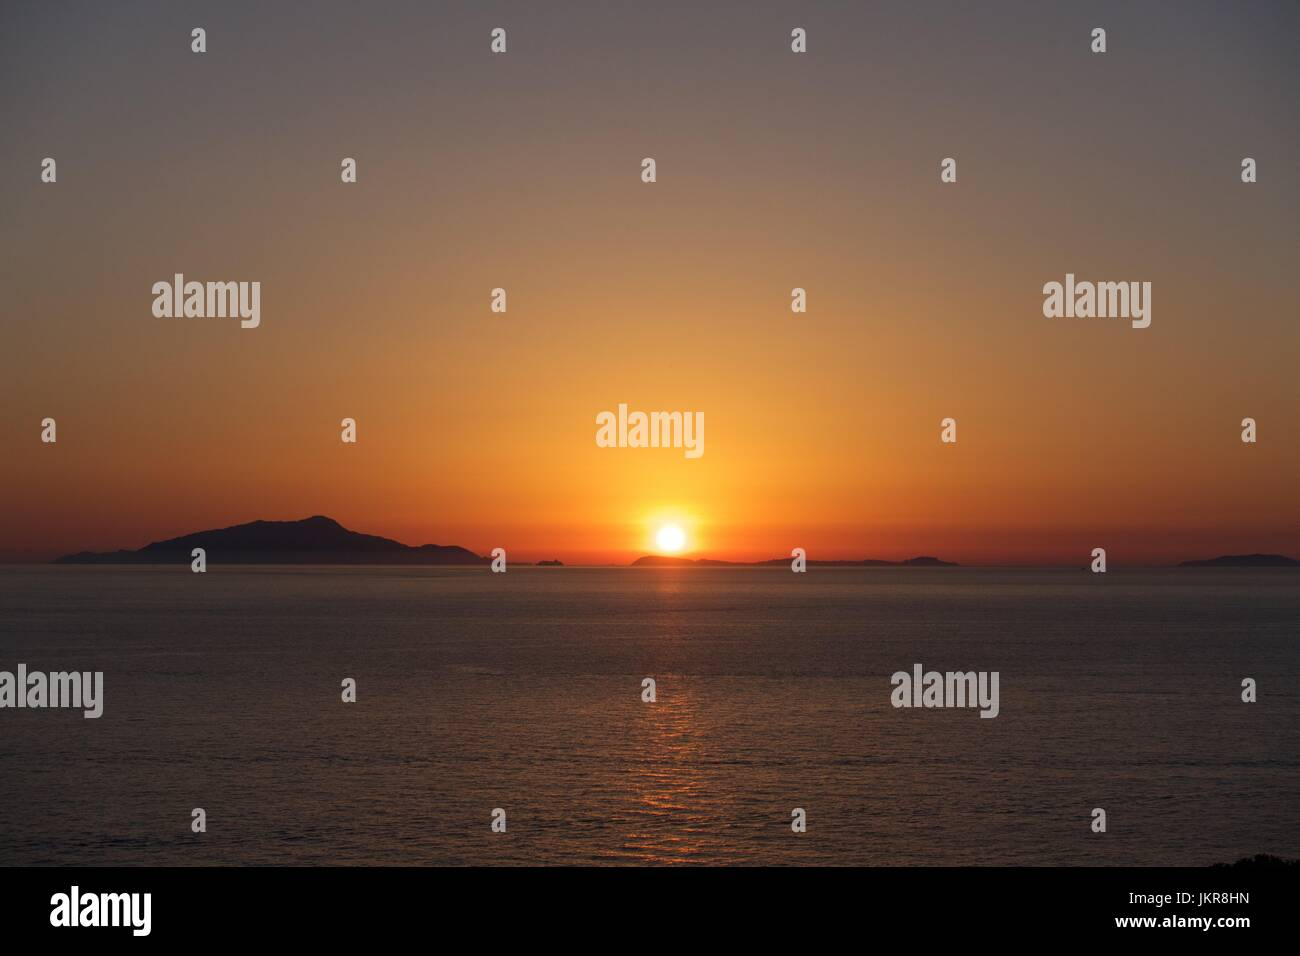 Sunset over Ischia from the Sorrento Peninsula across the Gulf of Naples, Italy - Stock Image